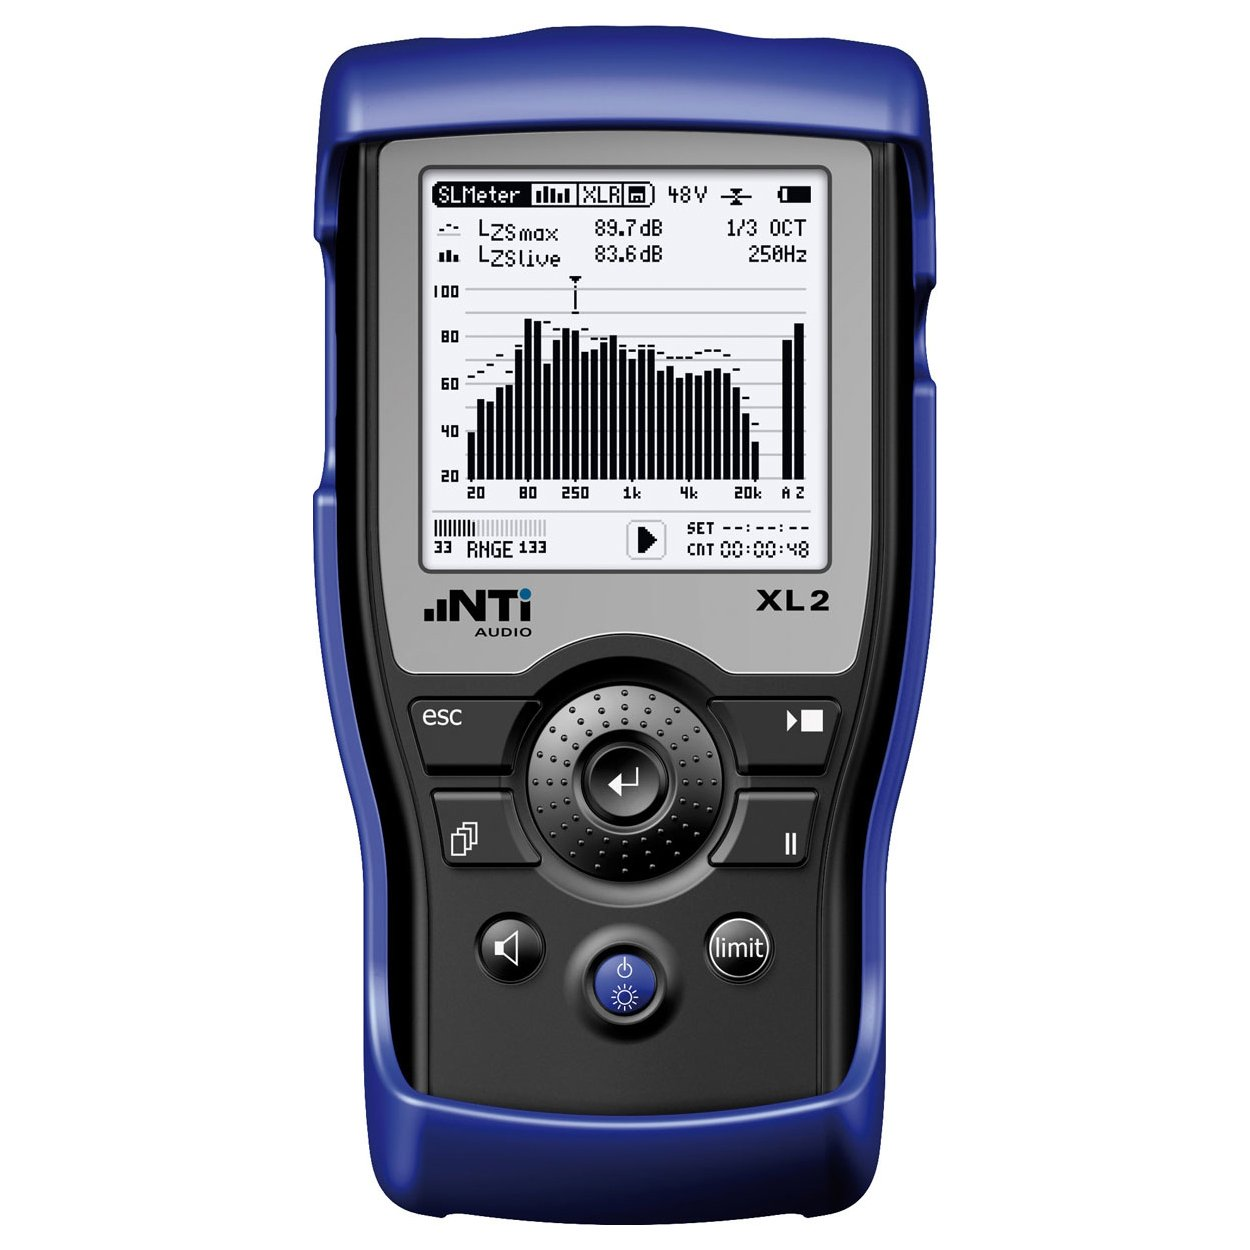 NTi Audio XL2 Sound Level Meter - Belram